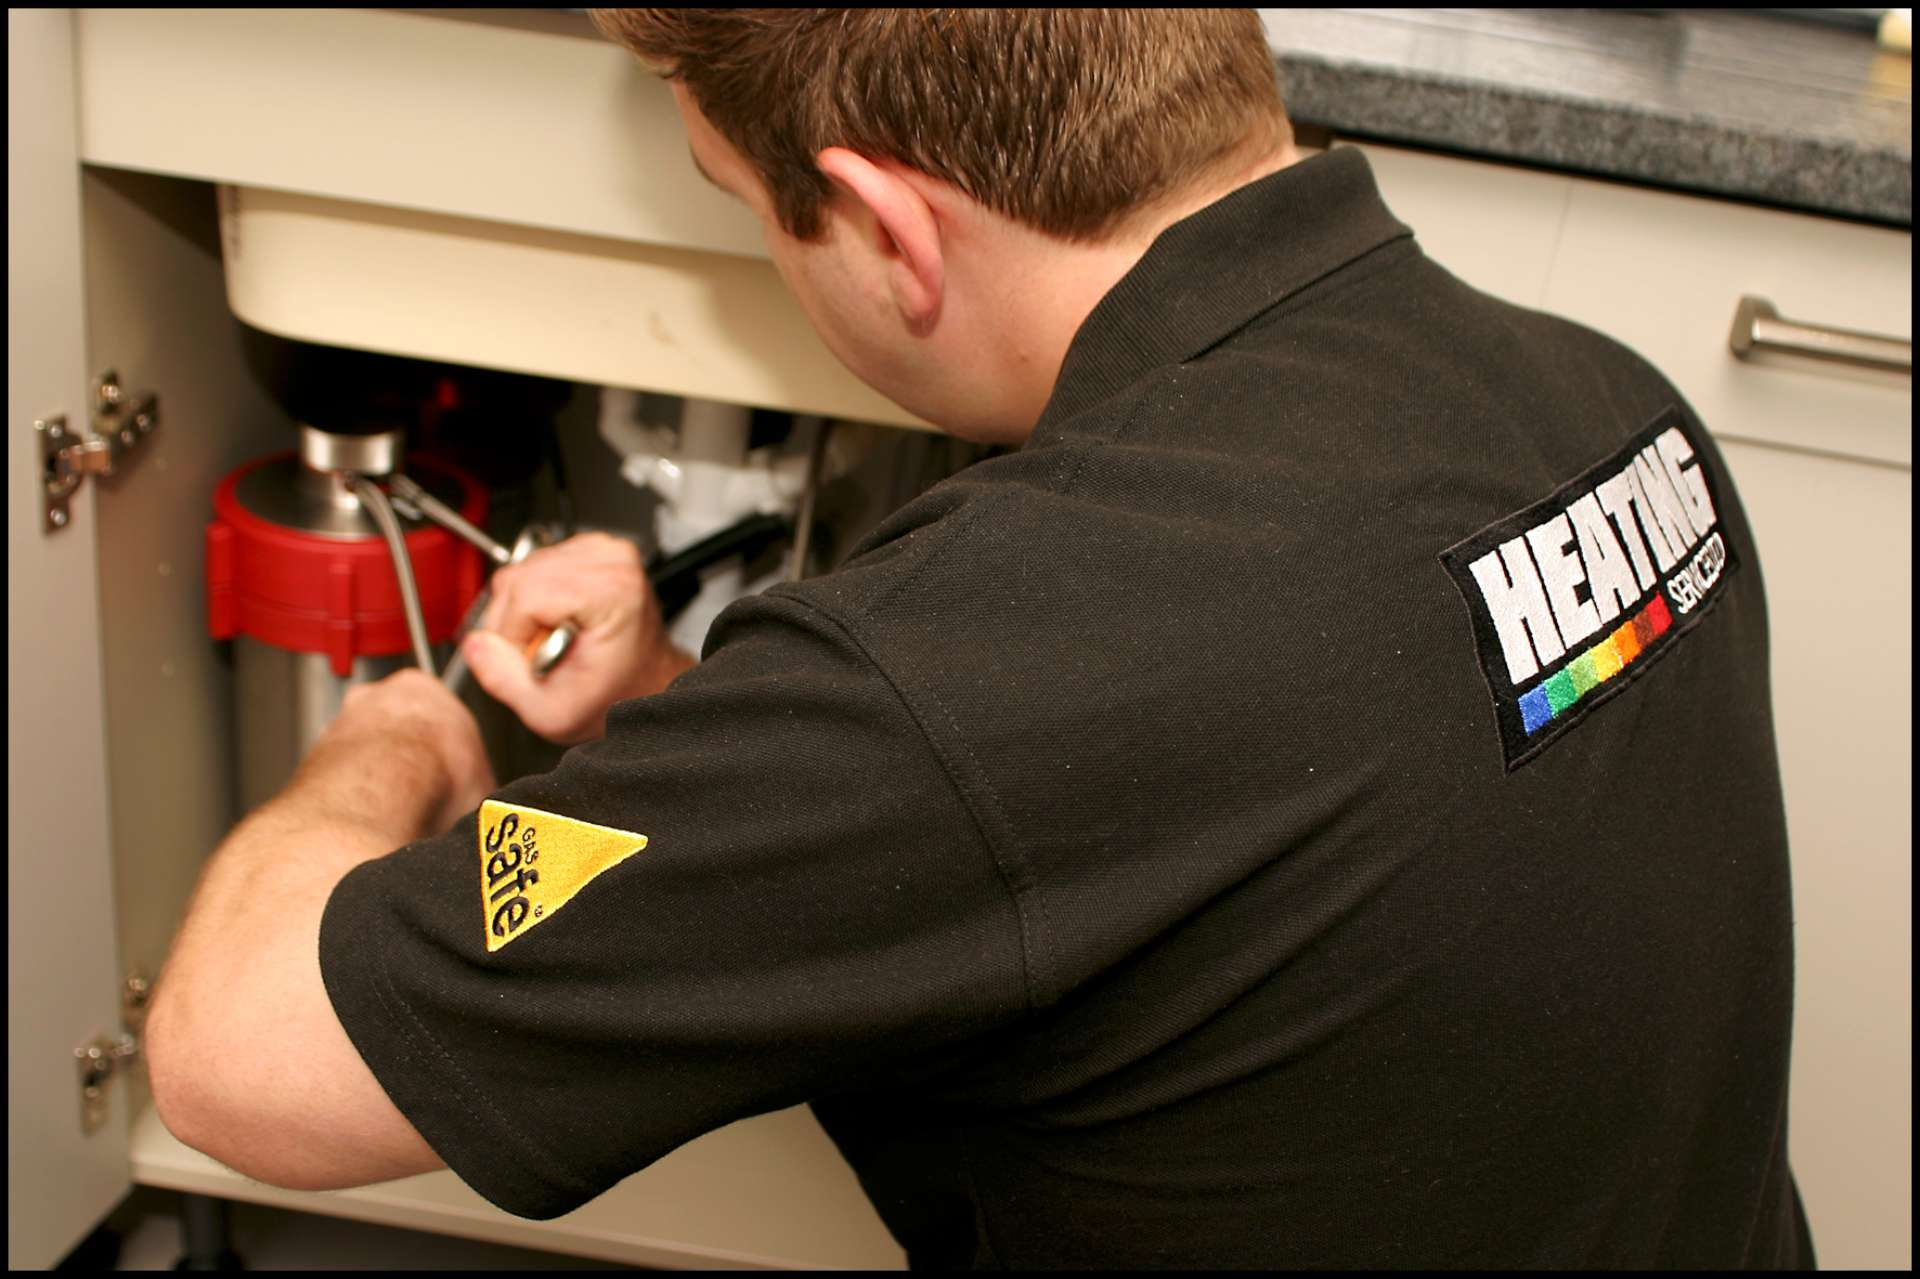 Plumbers Boiler Installation_ Service and Repairs and Bathroom Design and Installation by Heating Services Ltd in Blackheath (3)